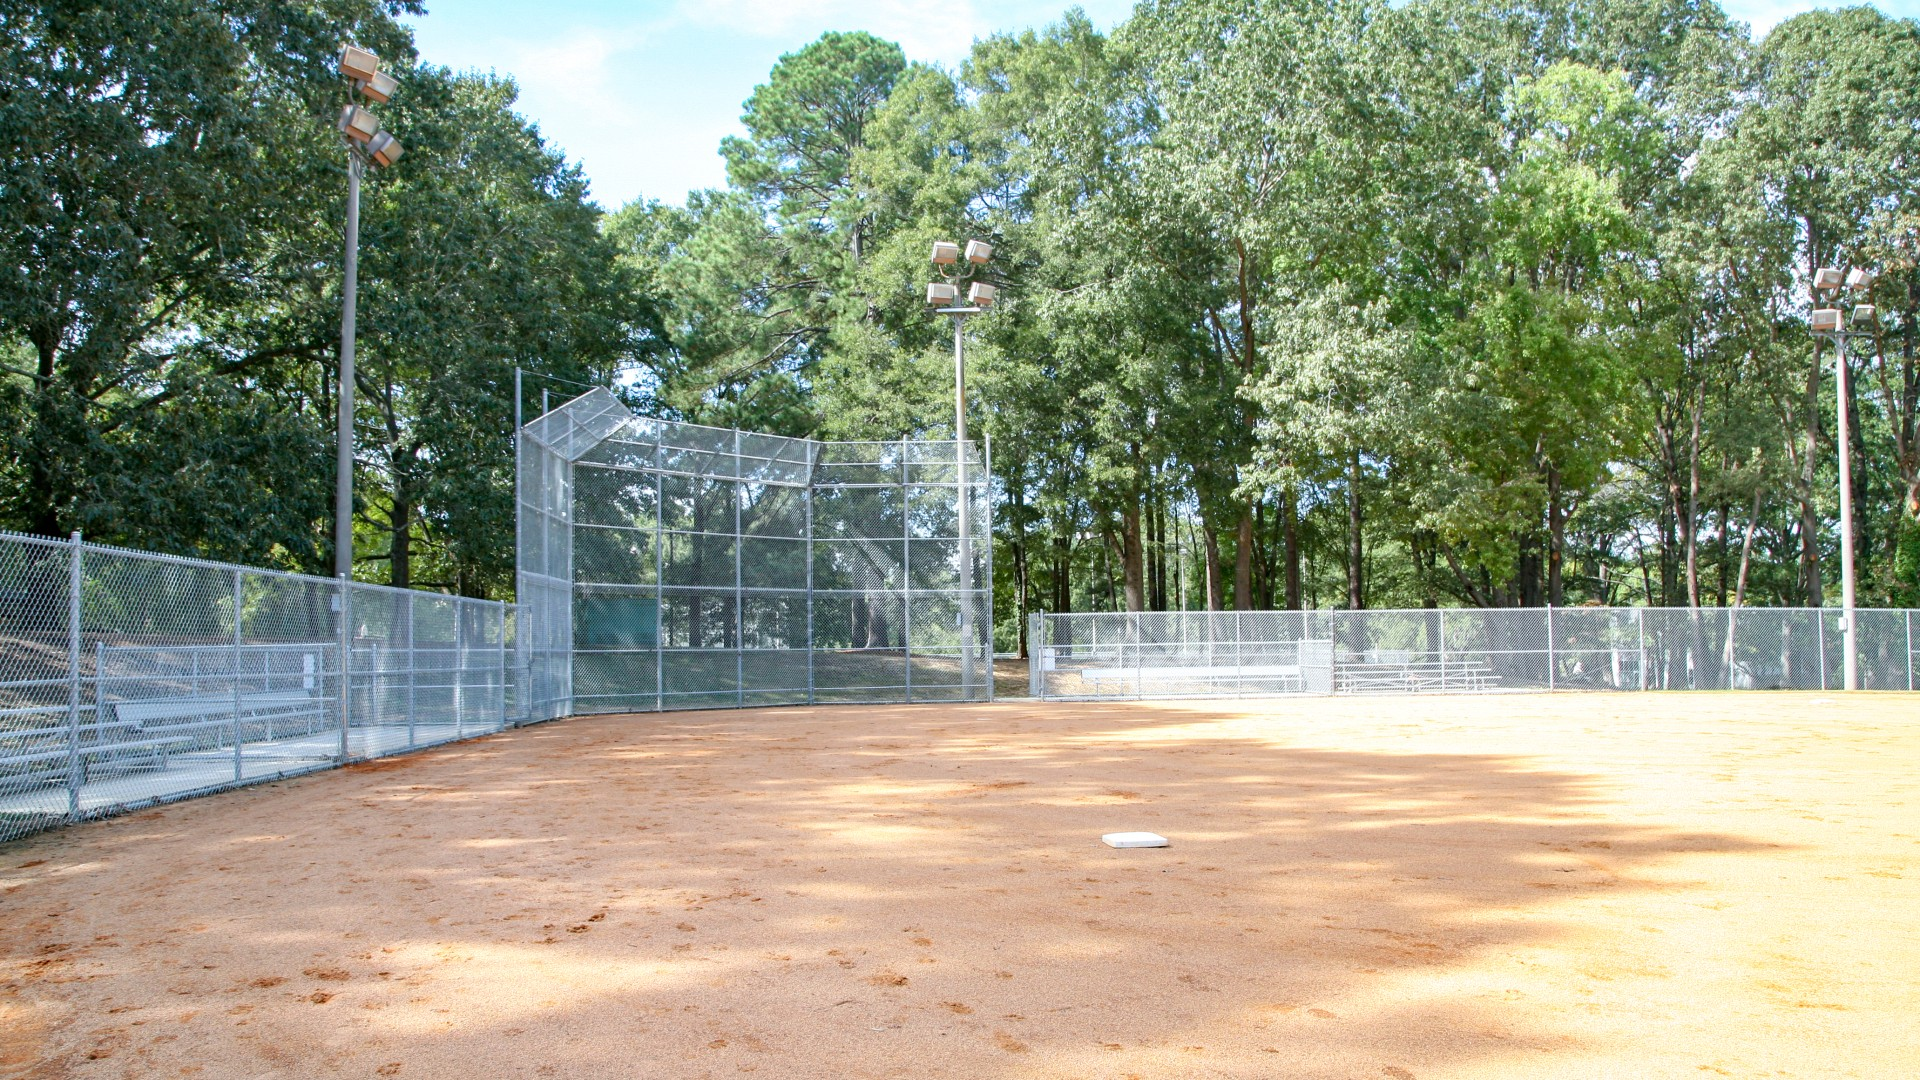 One of two outdoor softball fields at Oakwood Park